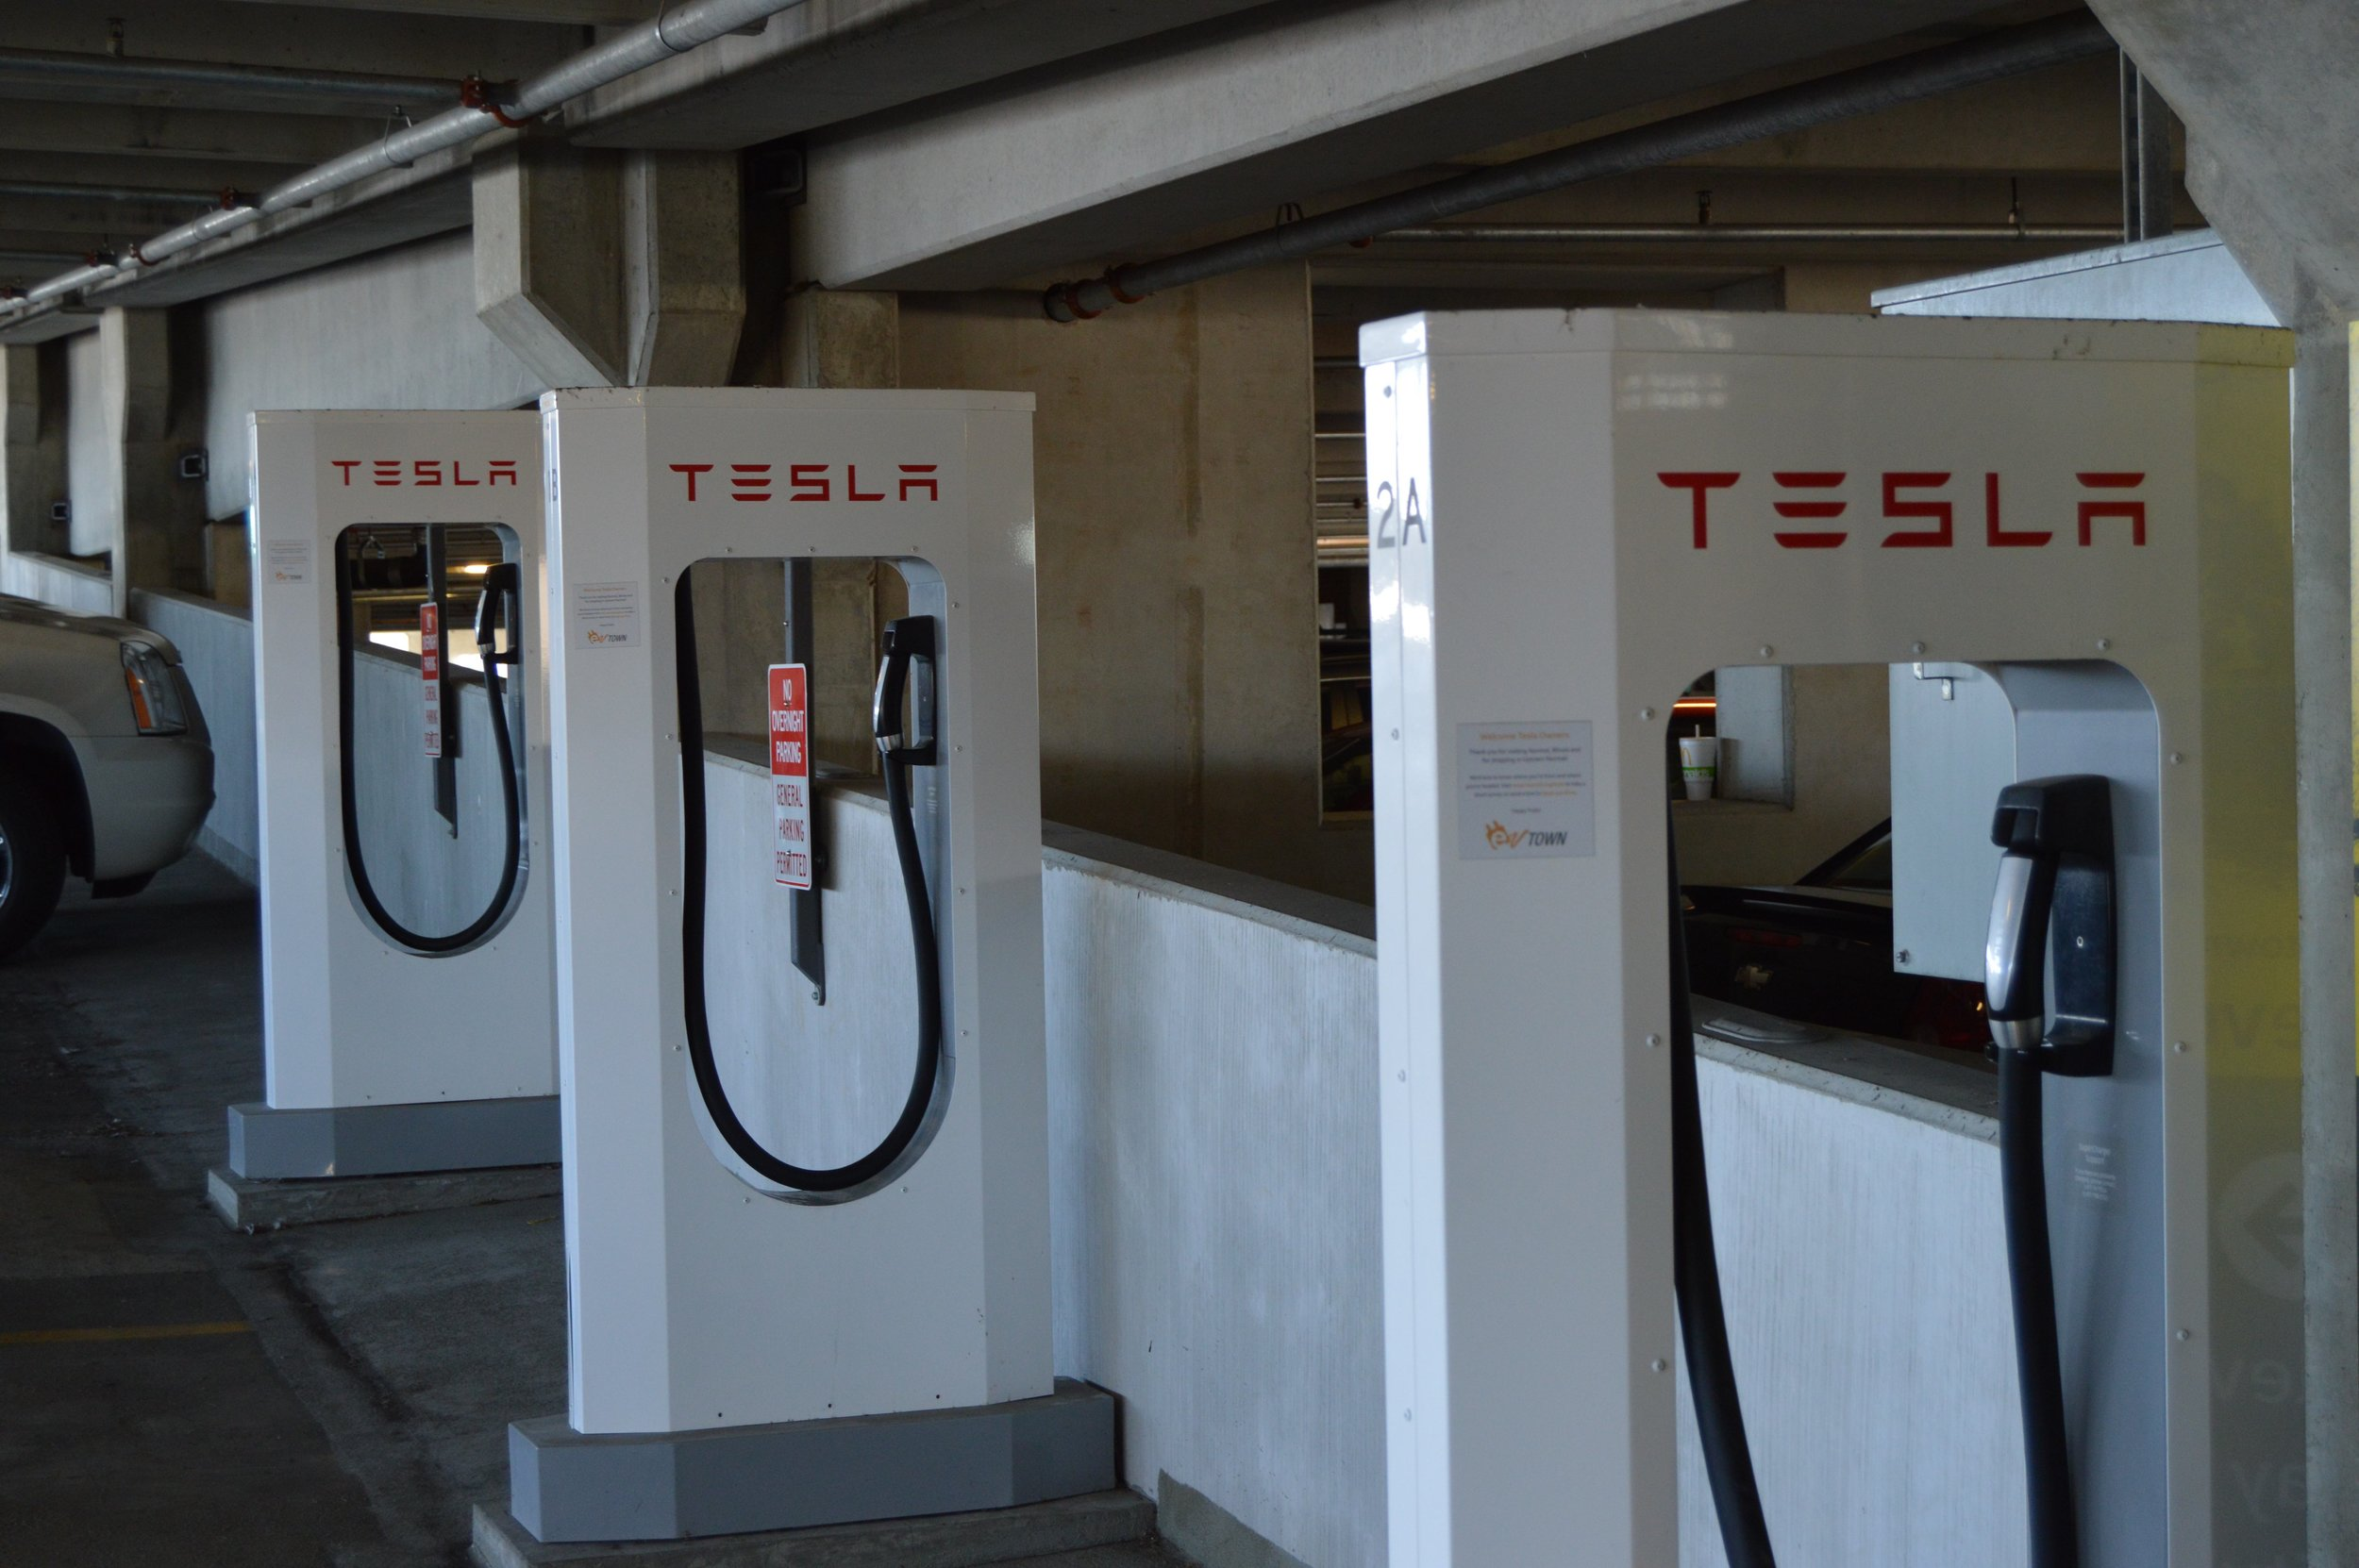 The four Tesla Supercharing stations in the Uptown Station parking garage. (Christian Prenzler for AdaptBN)